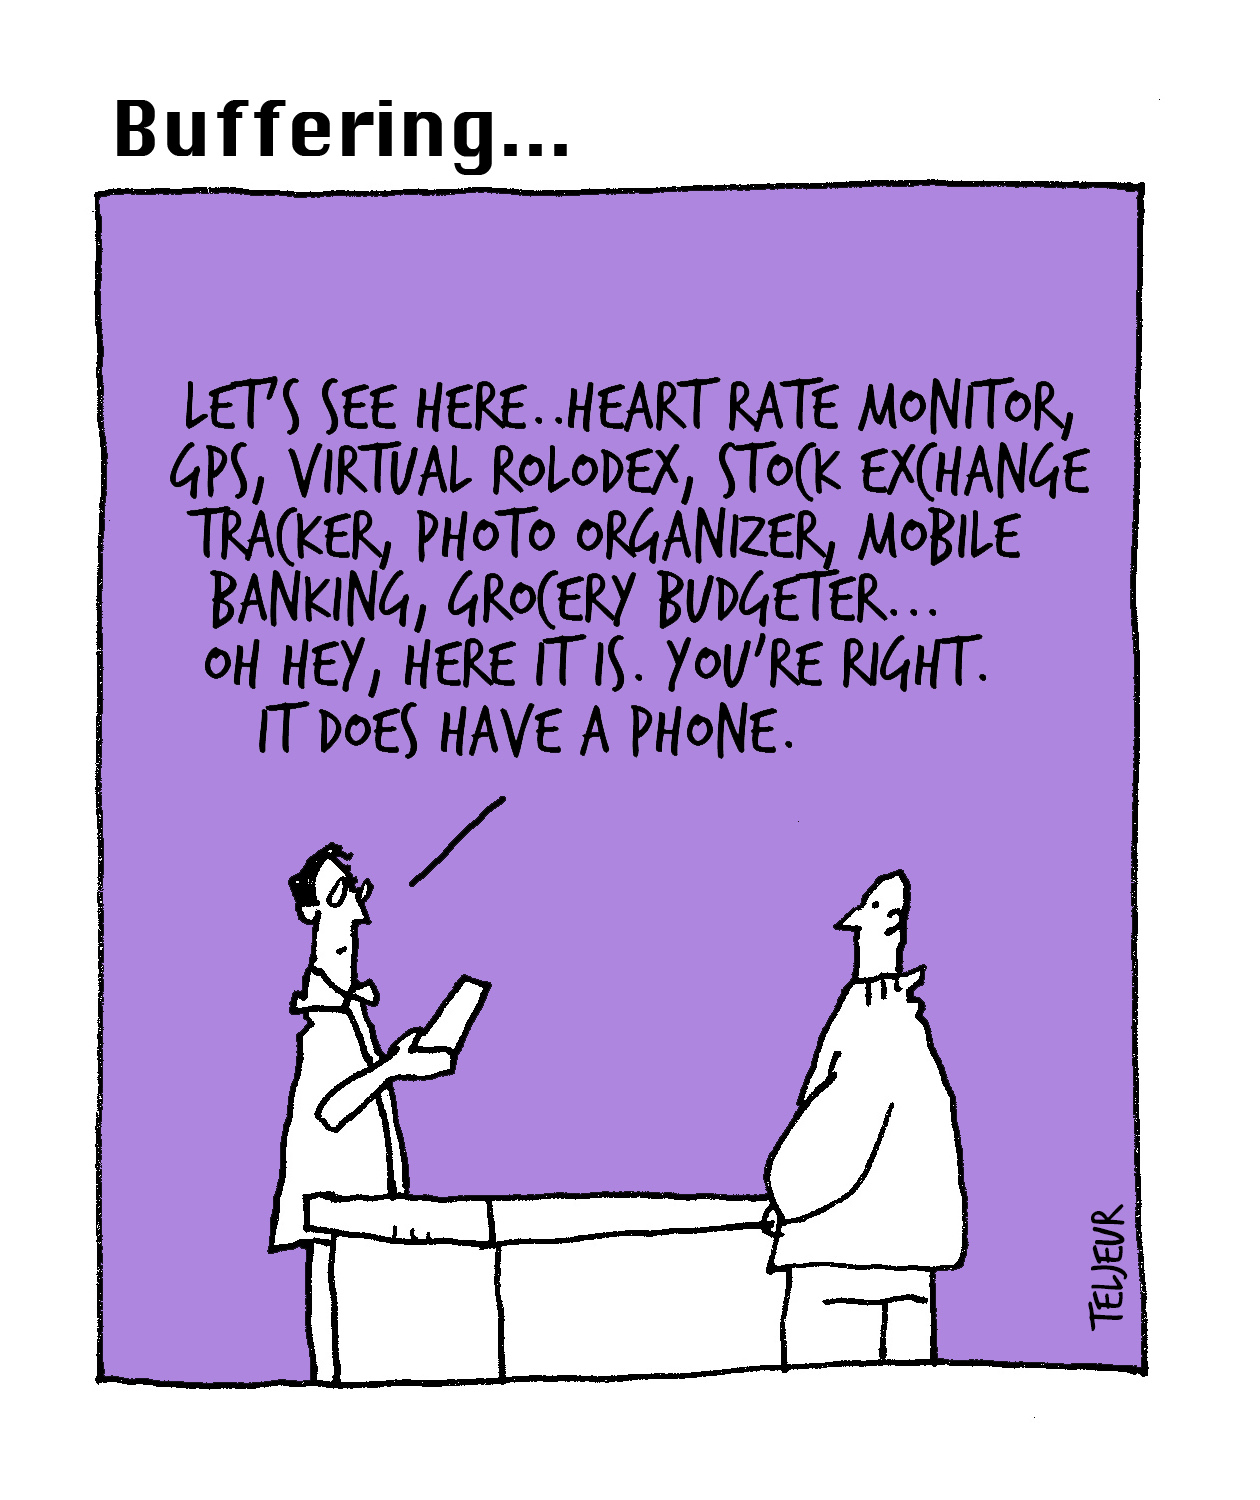 Buffing - smartphone features